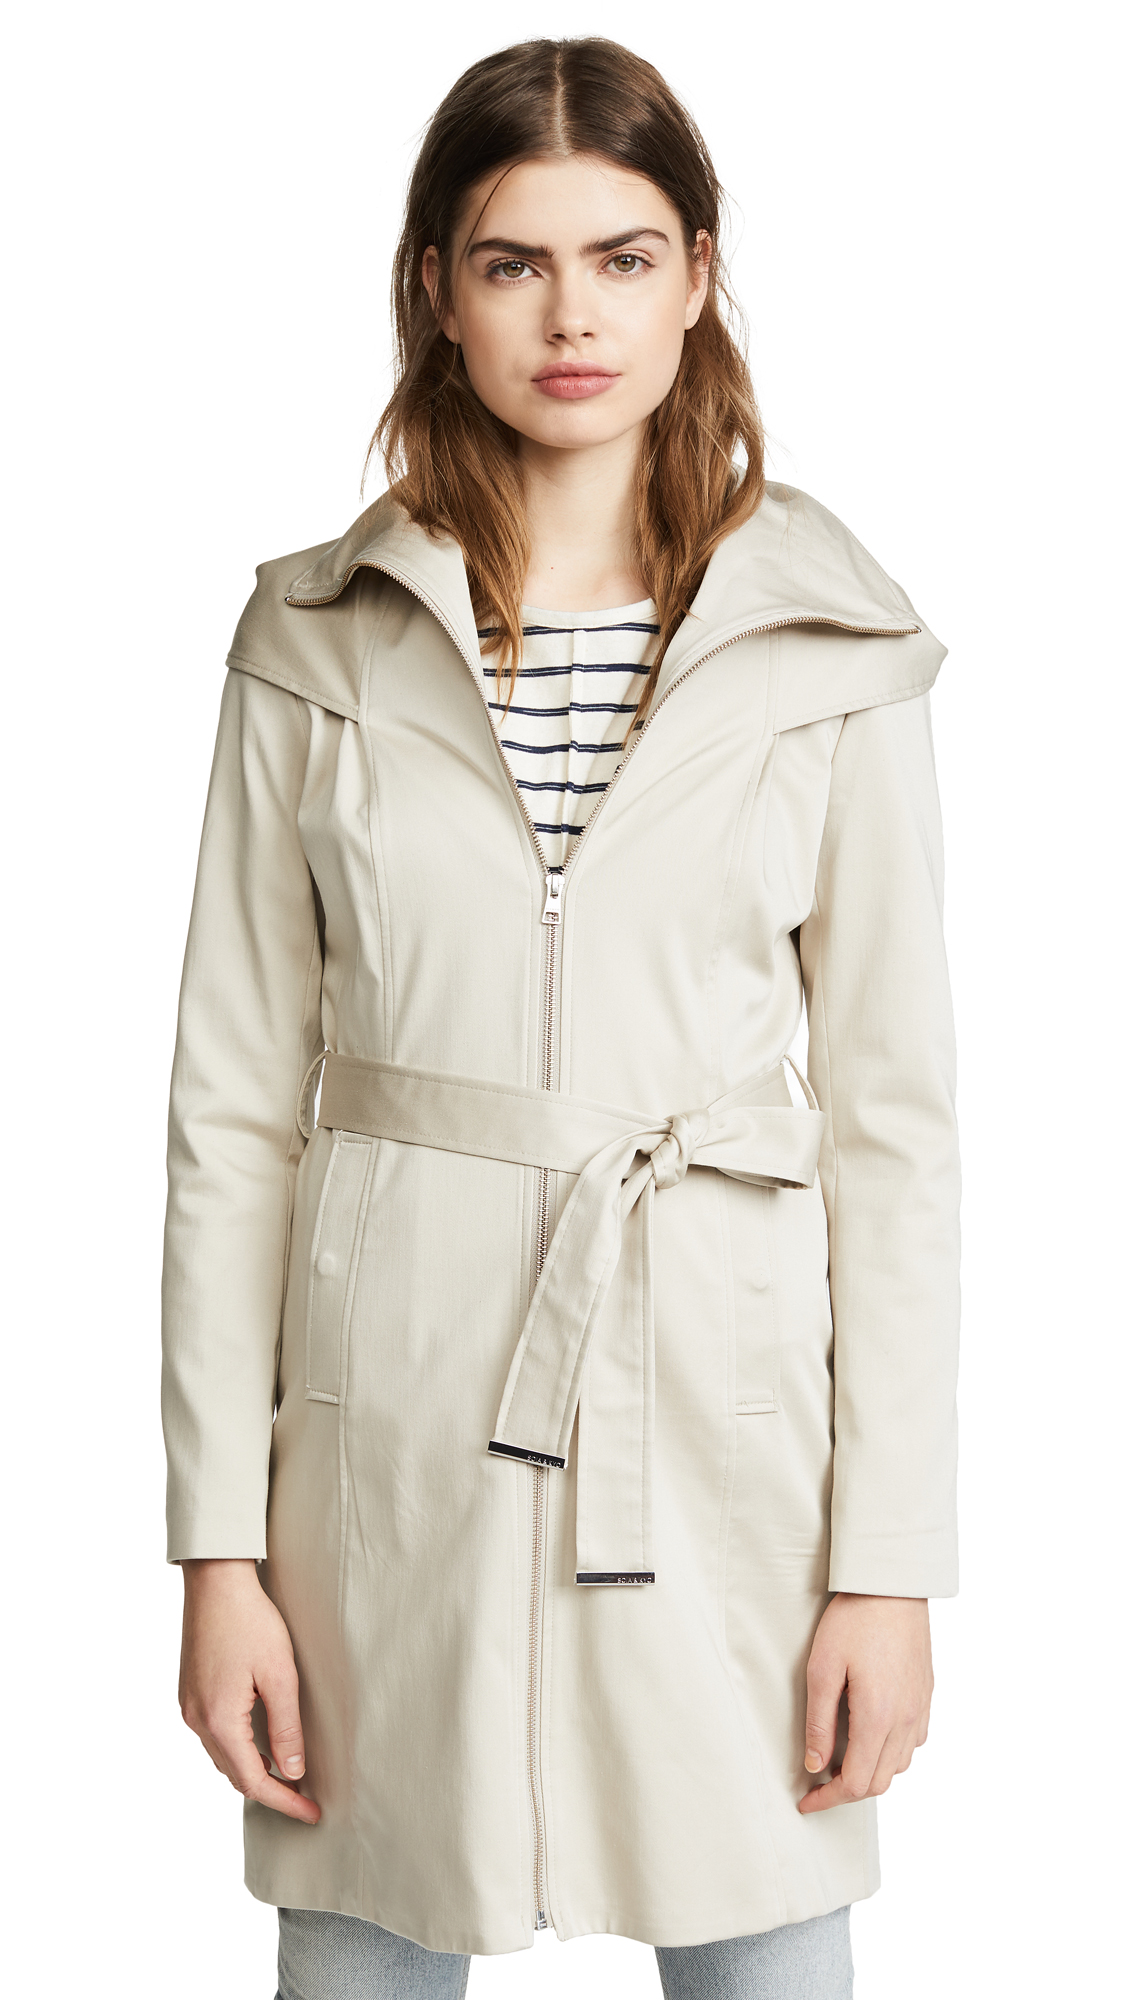 SOIA & KYO MAALI TRENCH COAT